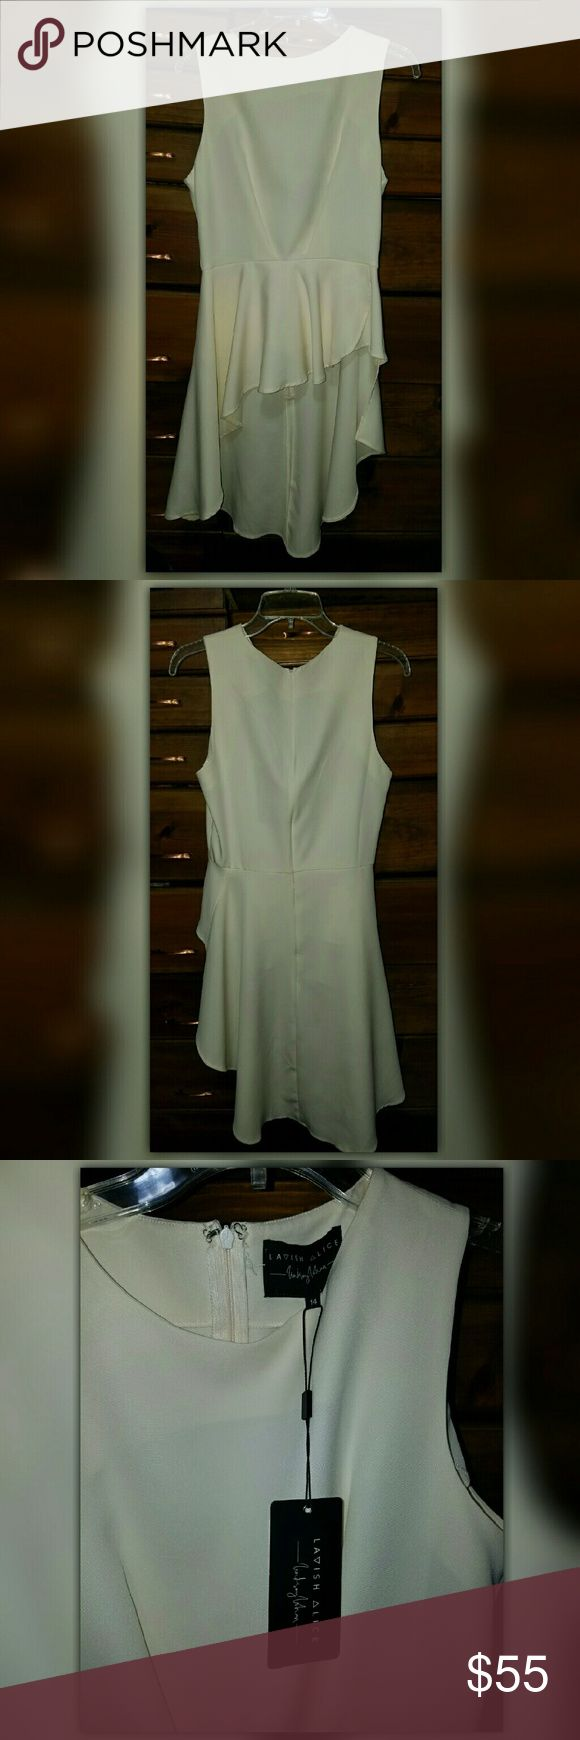 Lavish Alice Cream Waterfall Structured Top Blouse LAVISH ALICE Cream Waterfall Structured Top  The photos do not do justice for this beautiful top by Lavish Alice.  Photo 1: Front Photo 2: Back  Asymetrical flowing blouse that drapes down the back.   Sleeveless, Zipper Back Closure, Nice Matetial... Womens Size 14  PLEASE NOTE: According to this site's sizing chart this would fall into a Size: Large. But according to Lavish Alice sizing chart this would be an Extra Large, thetefore; I…